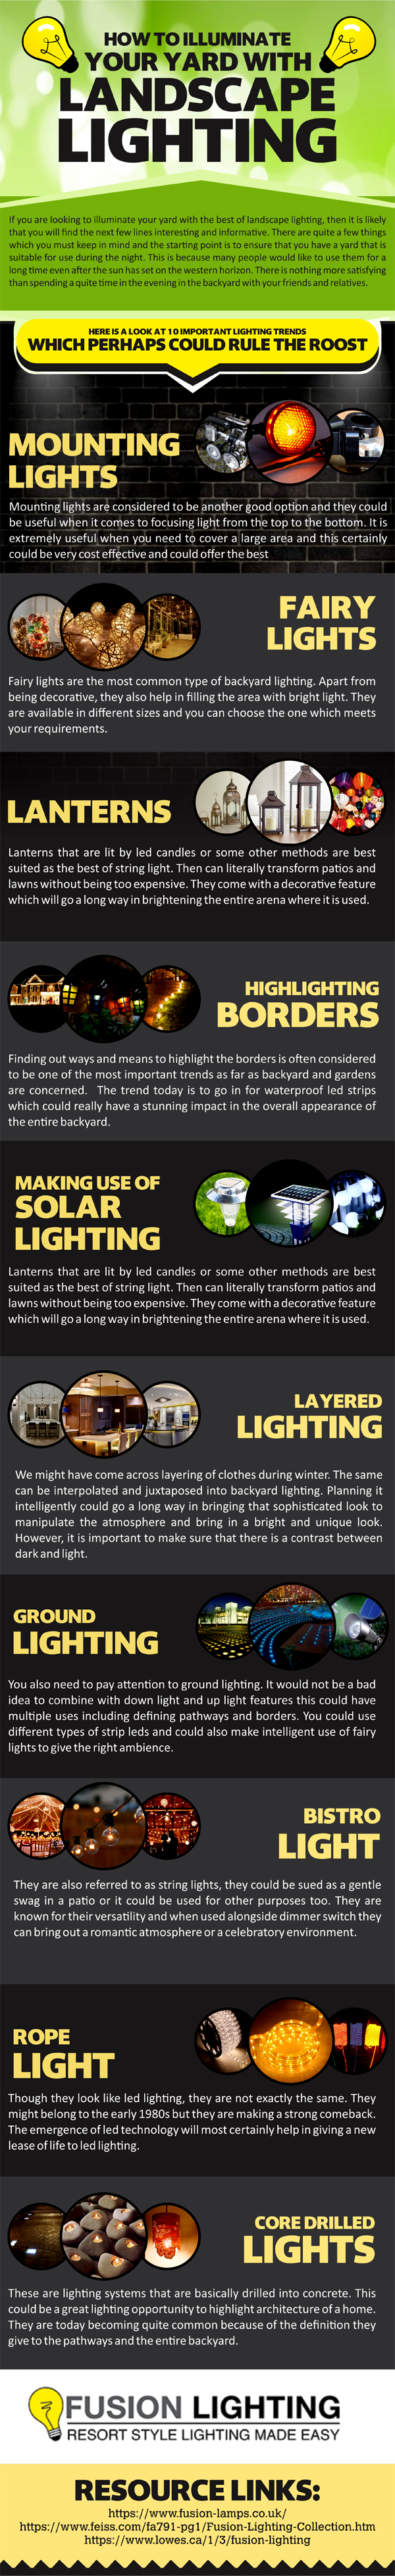 landscape light tips